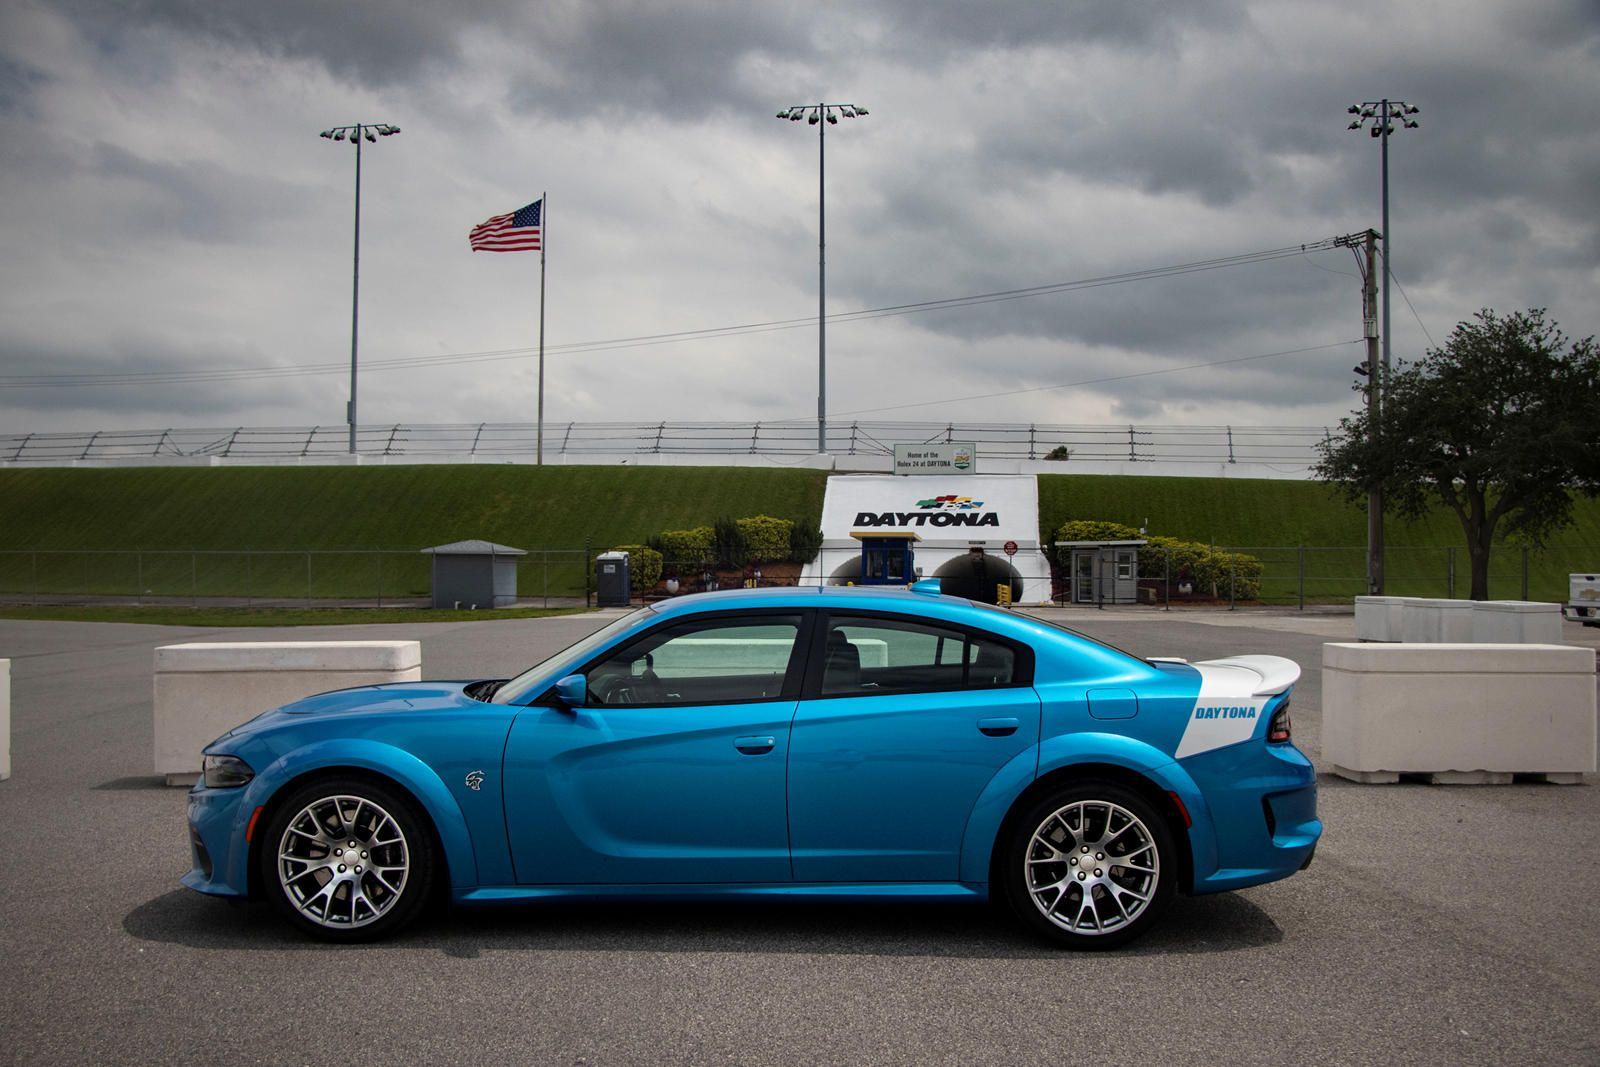 Is The Dodge Charger Hellcat A Good Road Trip Car We Took The Daytona Edition Of The 717 Hp Muscle Car To D Road Trip Car Dodge Charger Dodge Charger Hellcat